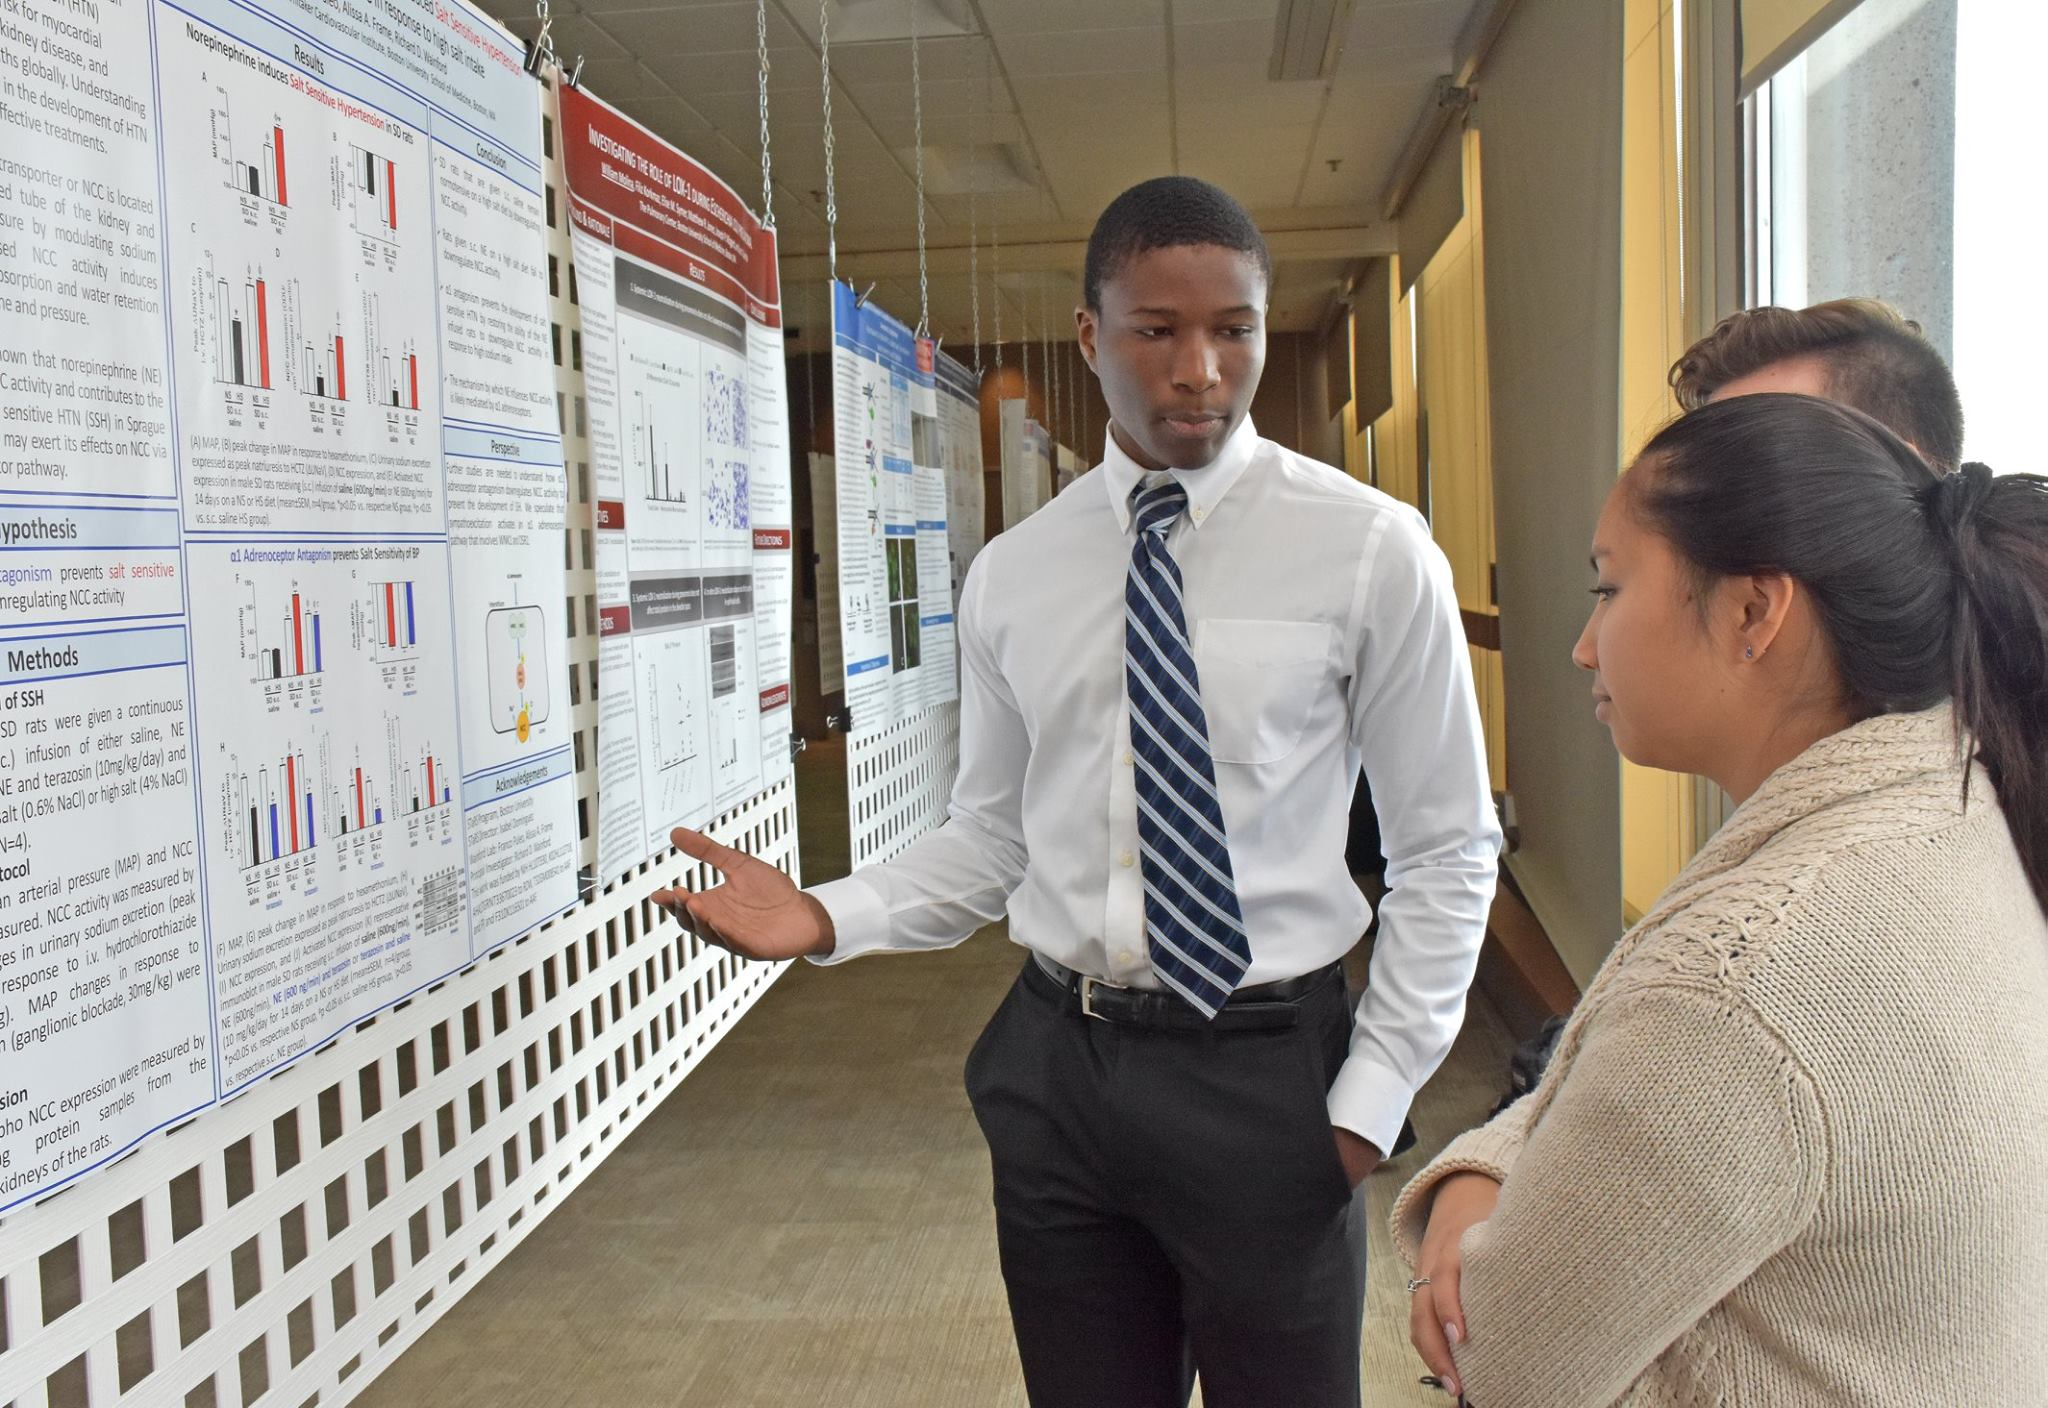 Man sharing his research at poster session